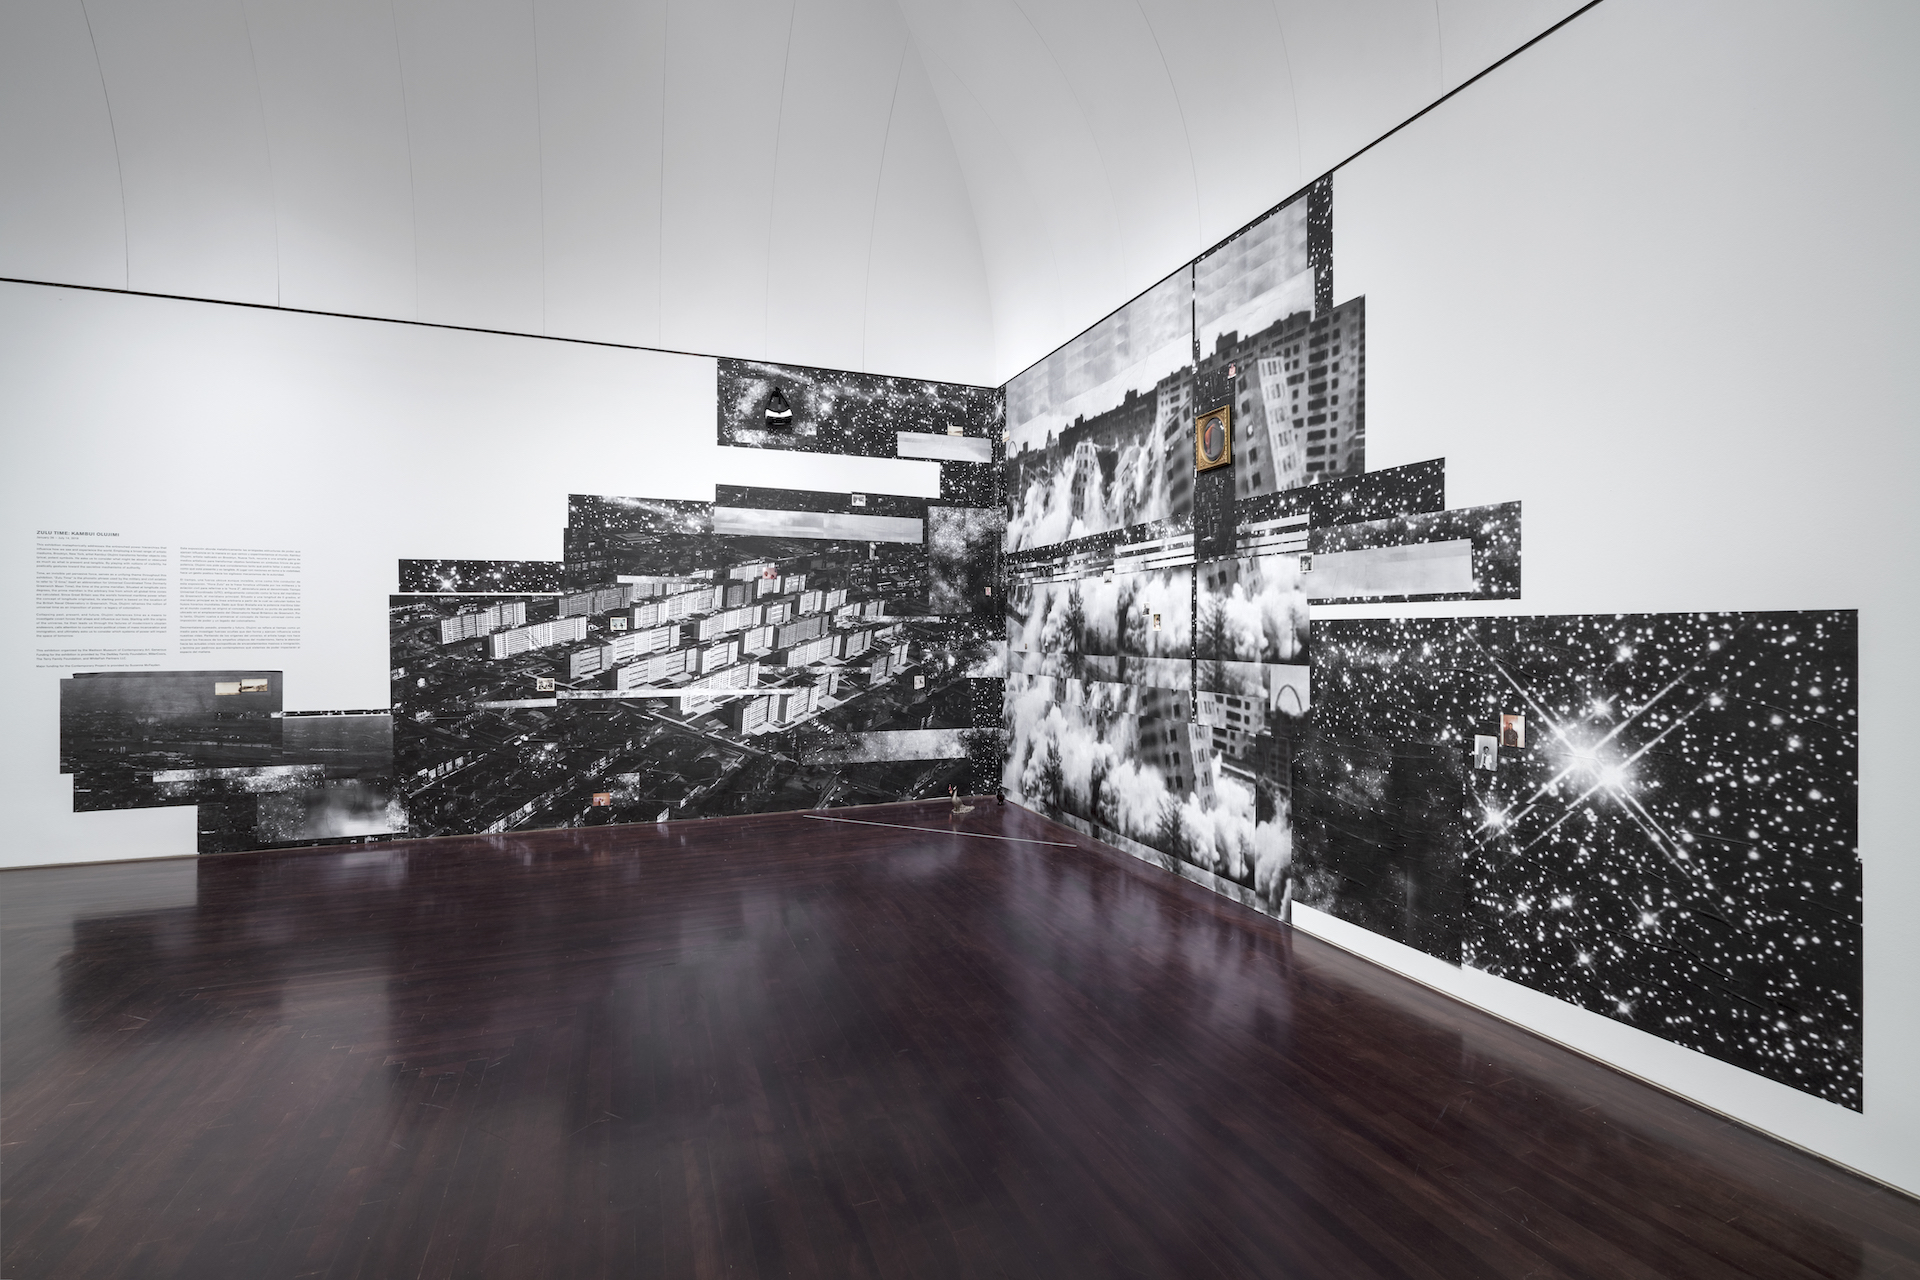 """View of the installation """"The Black That Birthed Us/Ville Radieuse, habite-à-machine (The Radiant City, the living machine), Mash Up #2"""" by Kambui Olujimi at the Blanton Museum"""